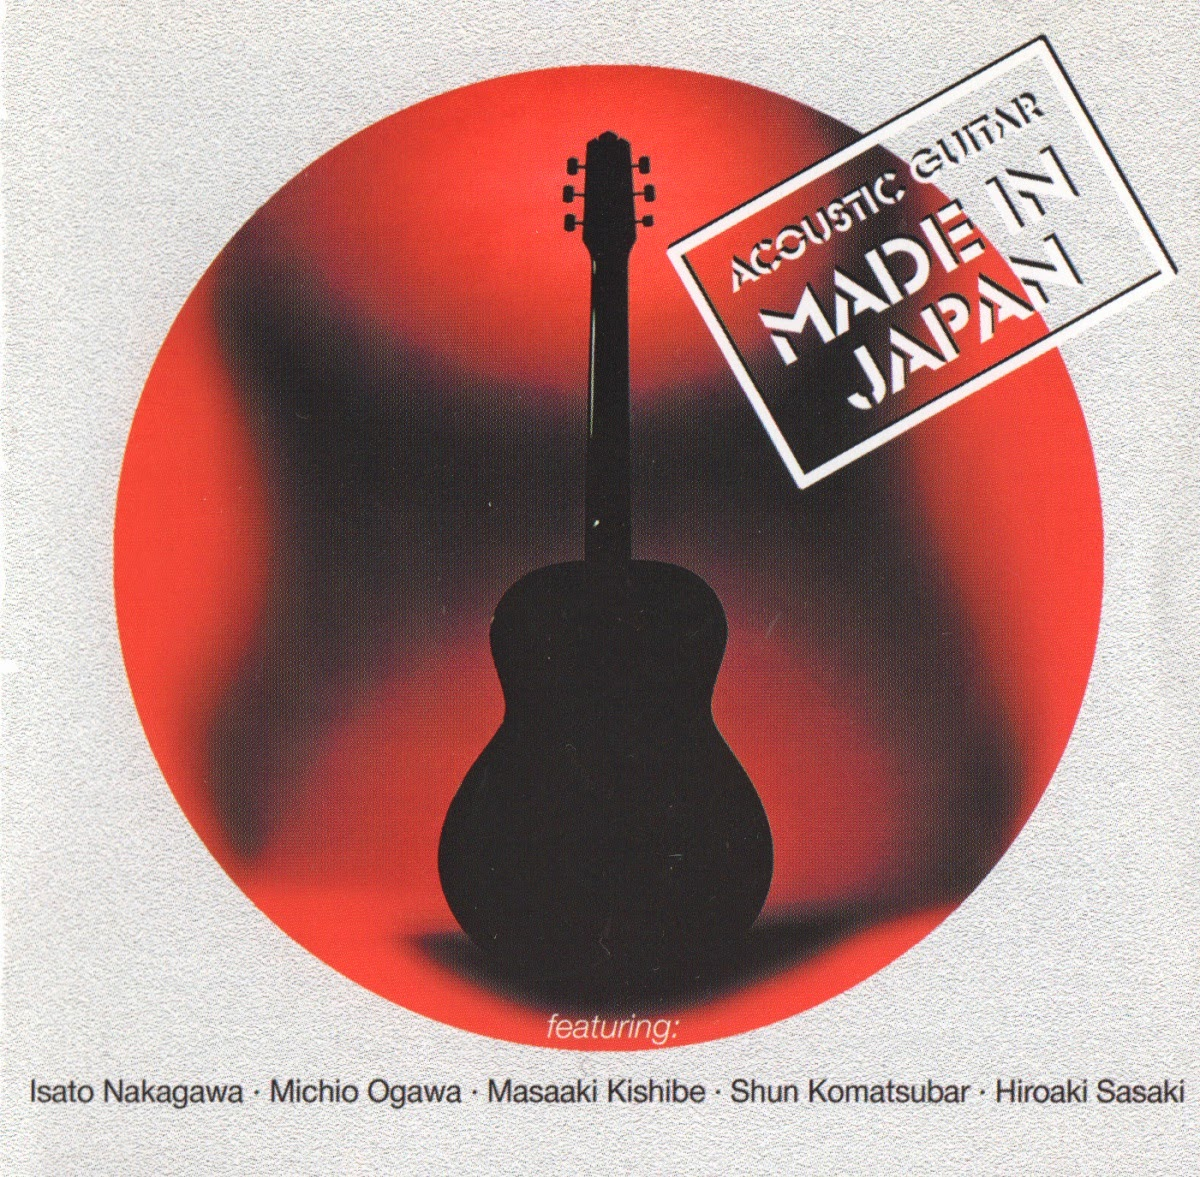 Acoustic Guitar] Various Artists - Acoustic Guitar Made In